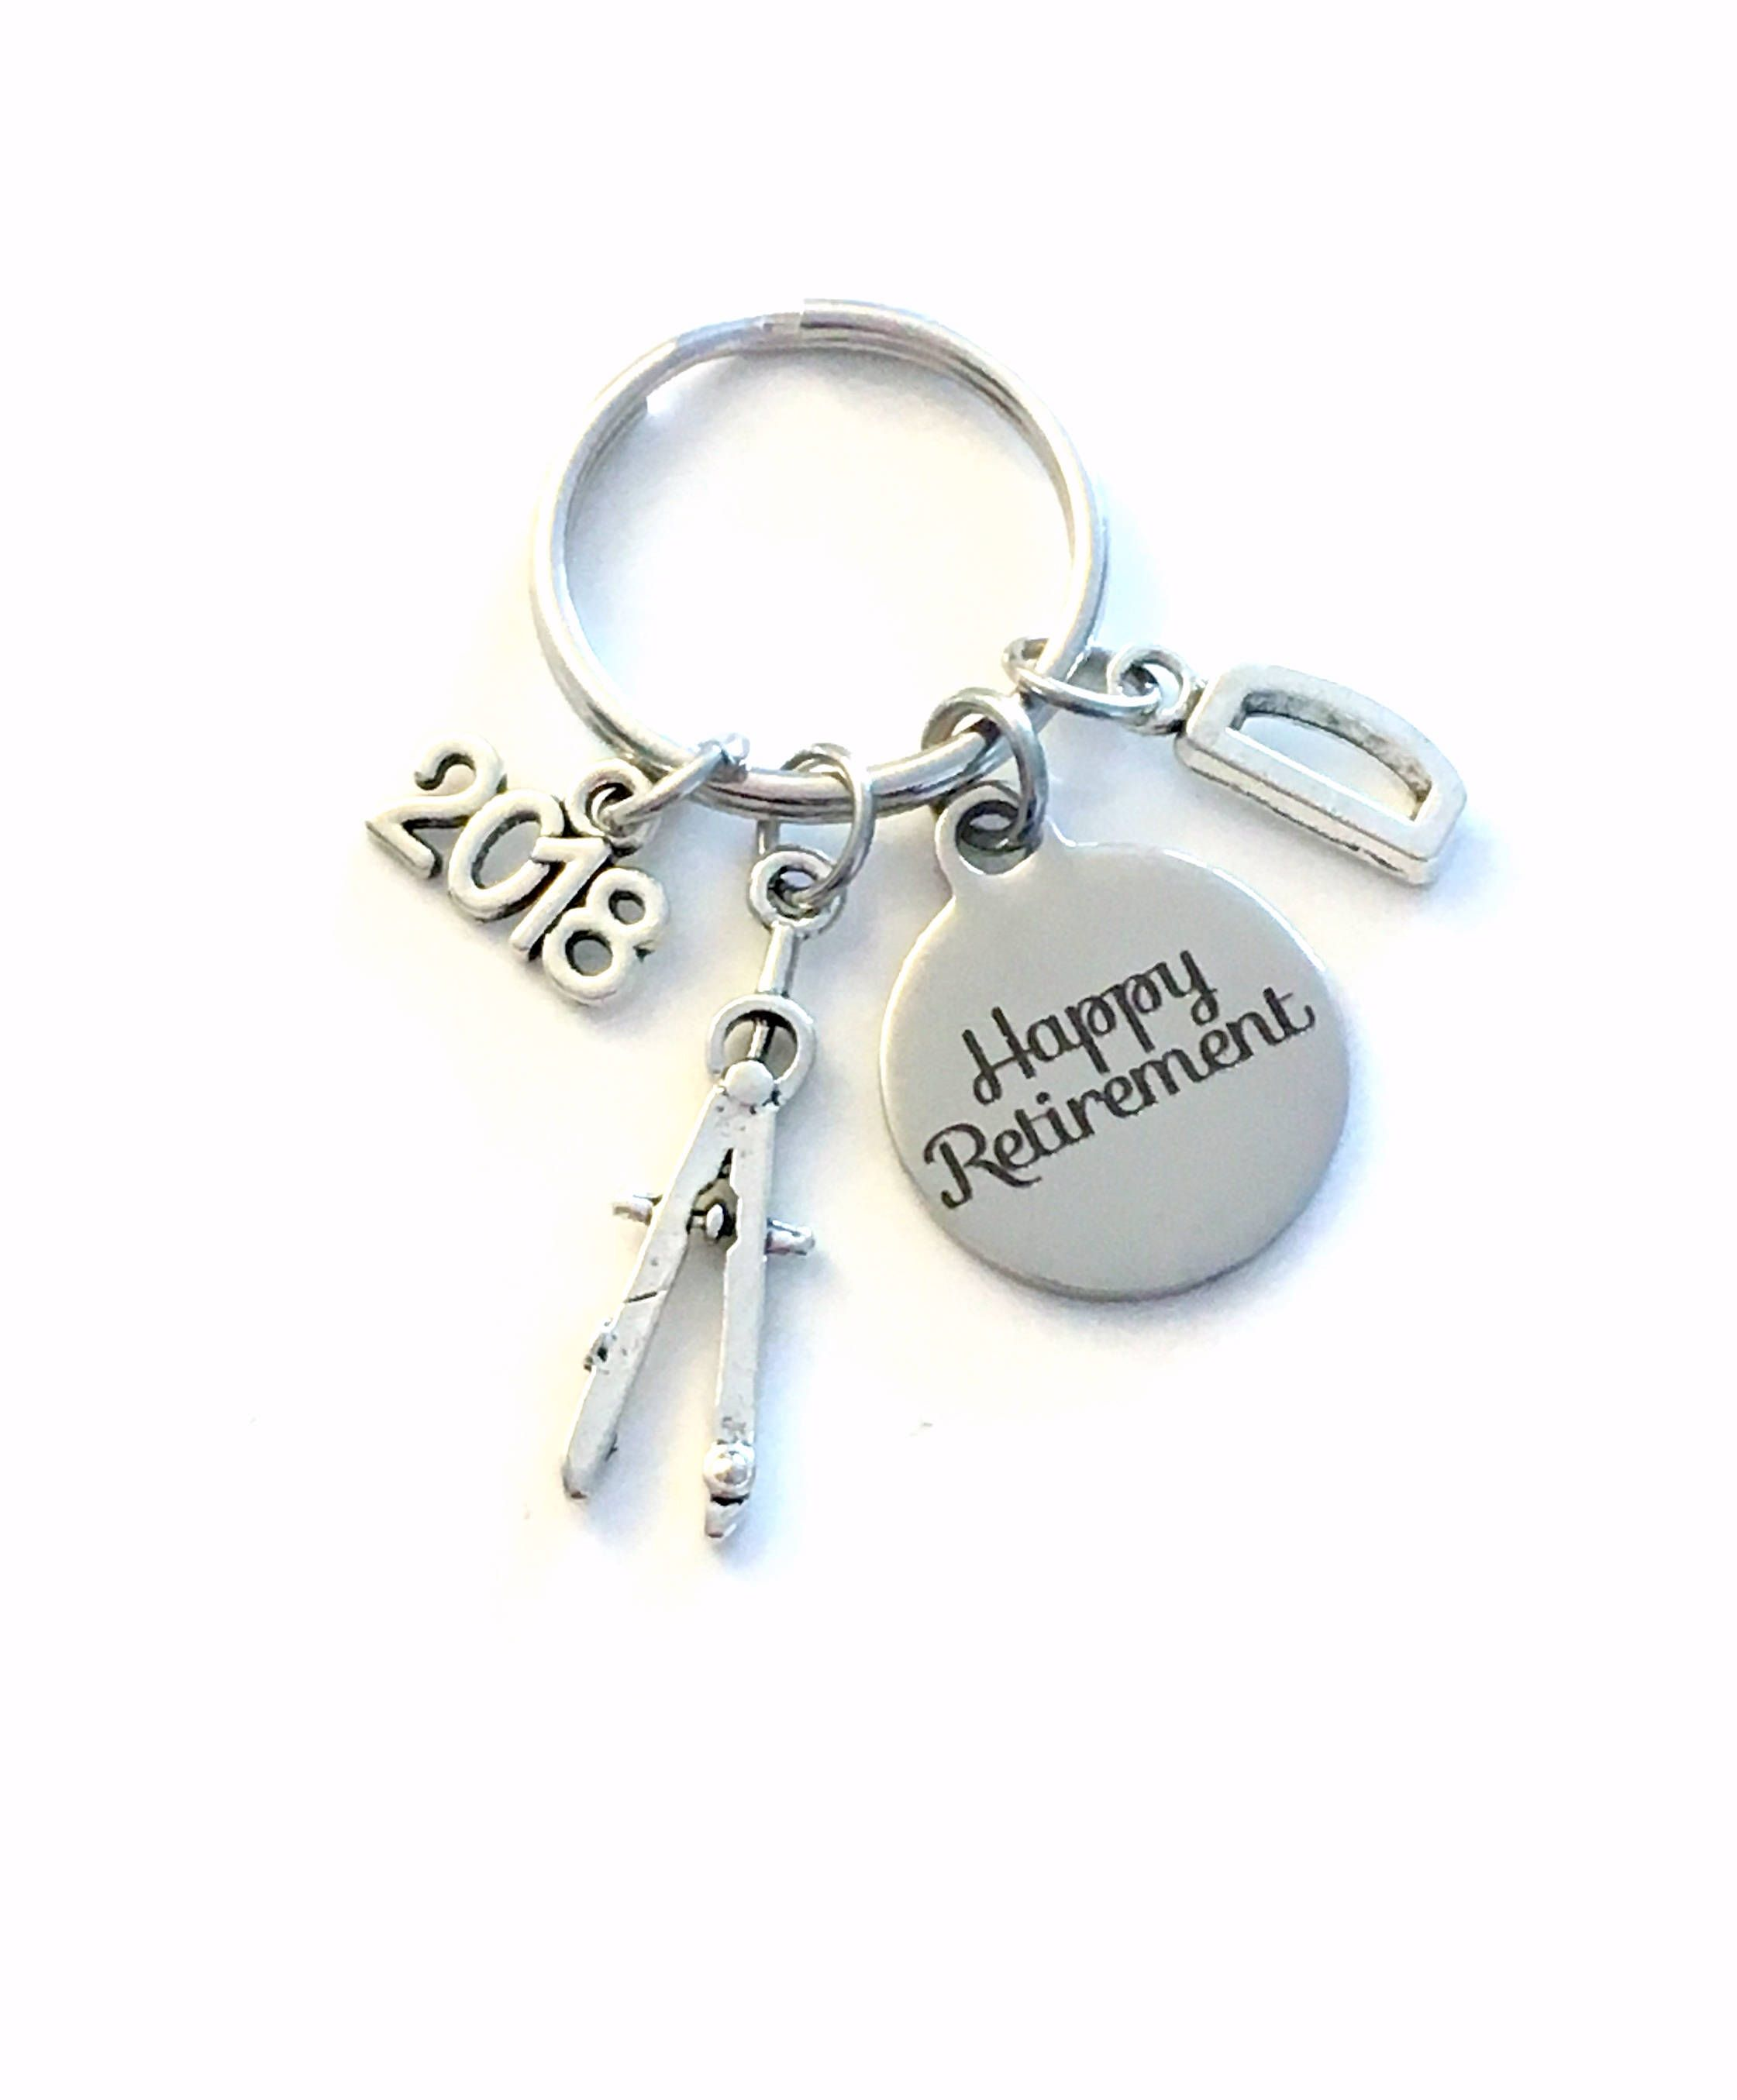 Retirement Gift For Architect Keychain   Architecture